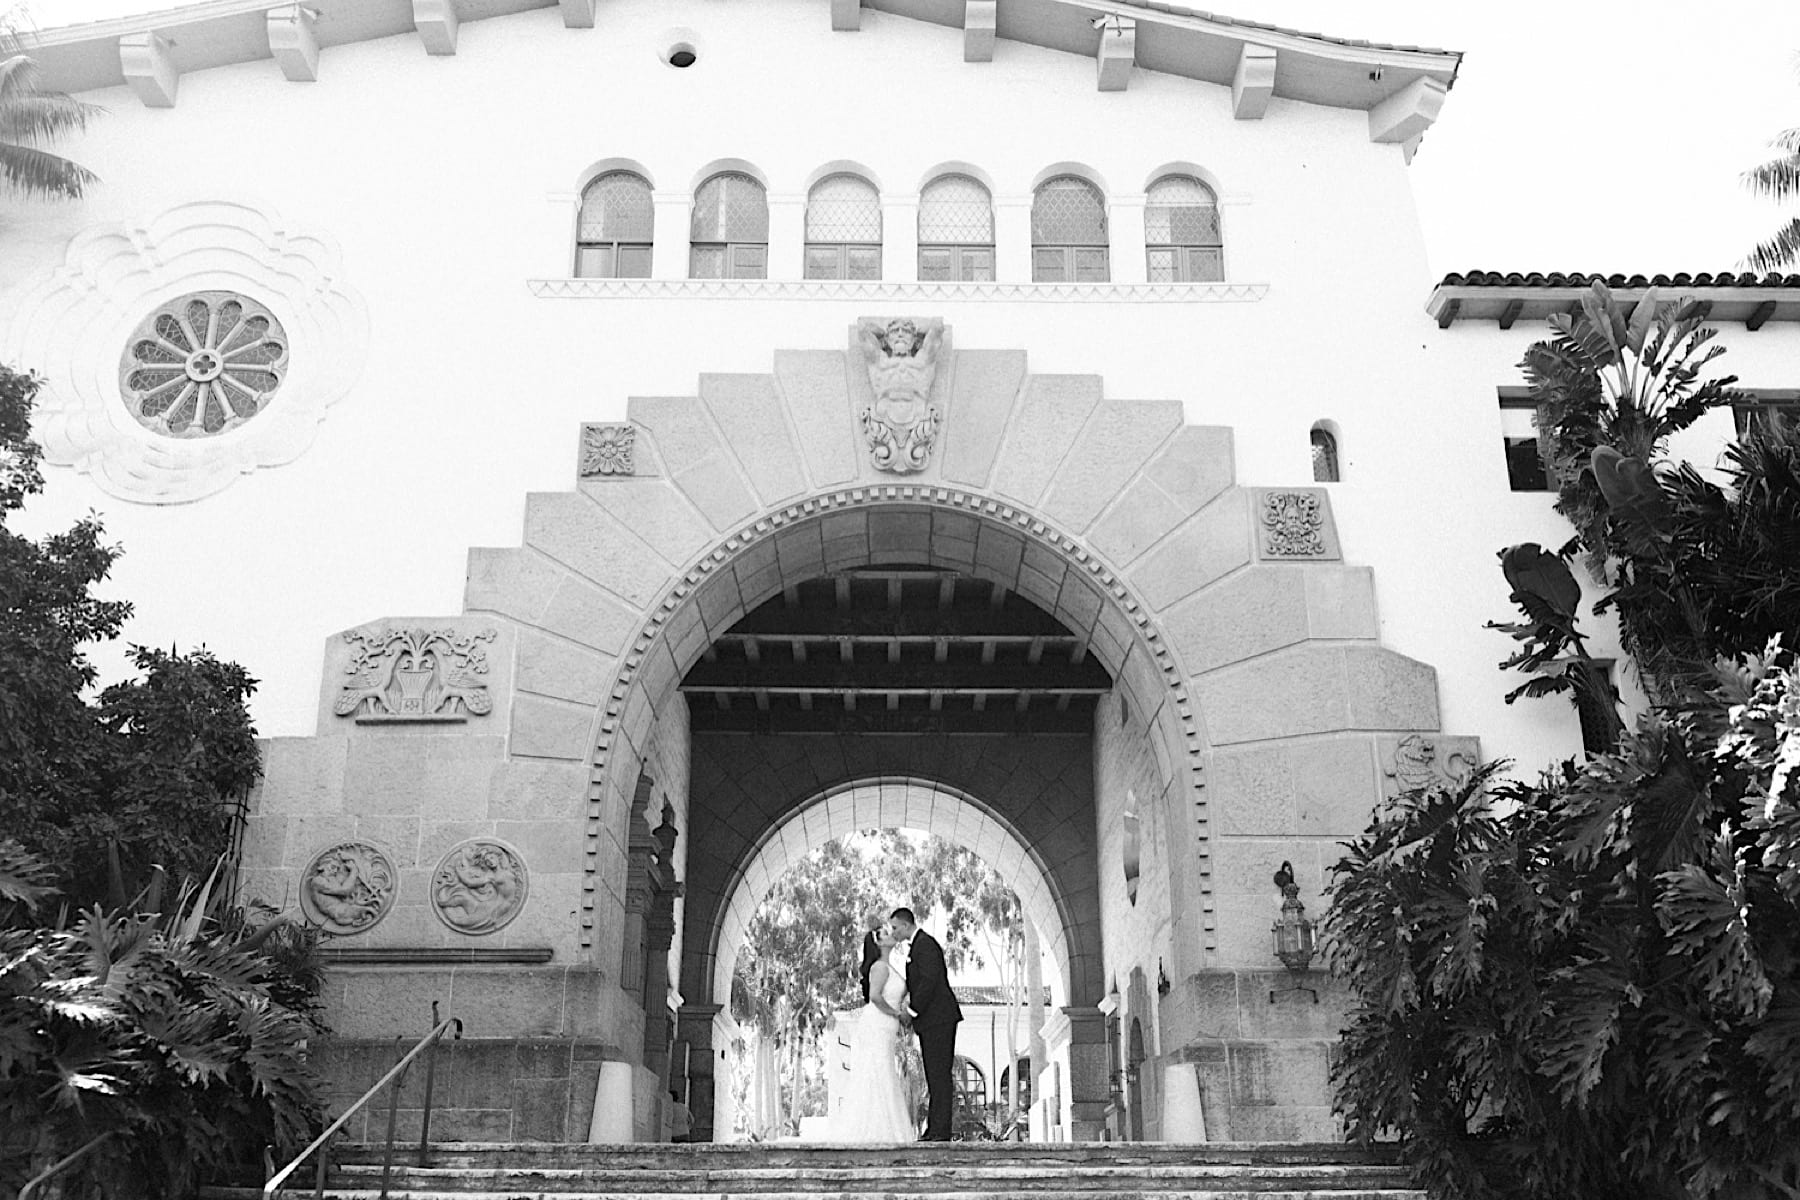 Private Ceremony in the Sunken Gardens at the Santa Barbara Courthouse, Santa Barbara Courthouse Private Ceremony, Ceremony at the Santa Barbara Courthouse, Santa Barbara Courthouse Wedding, How to get married at the santa barbara courthouse, santa barbara courthouse private ceremony, santa barbara courthouse civil ceremony, santa barbara courthouse wedding photographer, Santa Barbara wedding photographer, Wedding in the Sunken Gardens at the Santa Barbara Courthouse